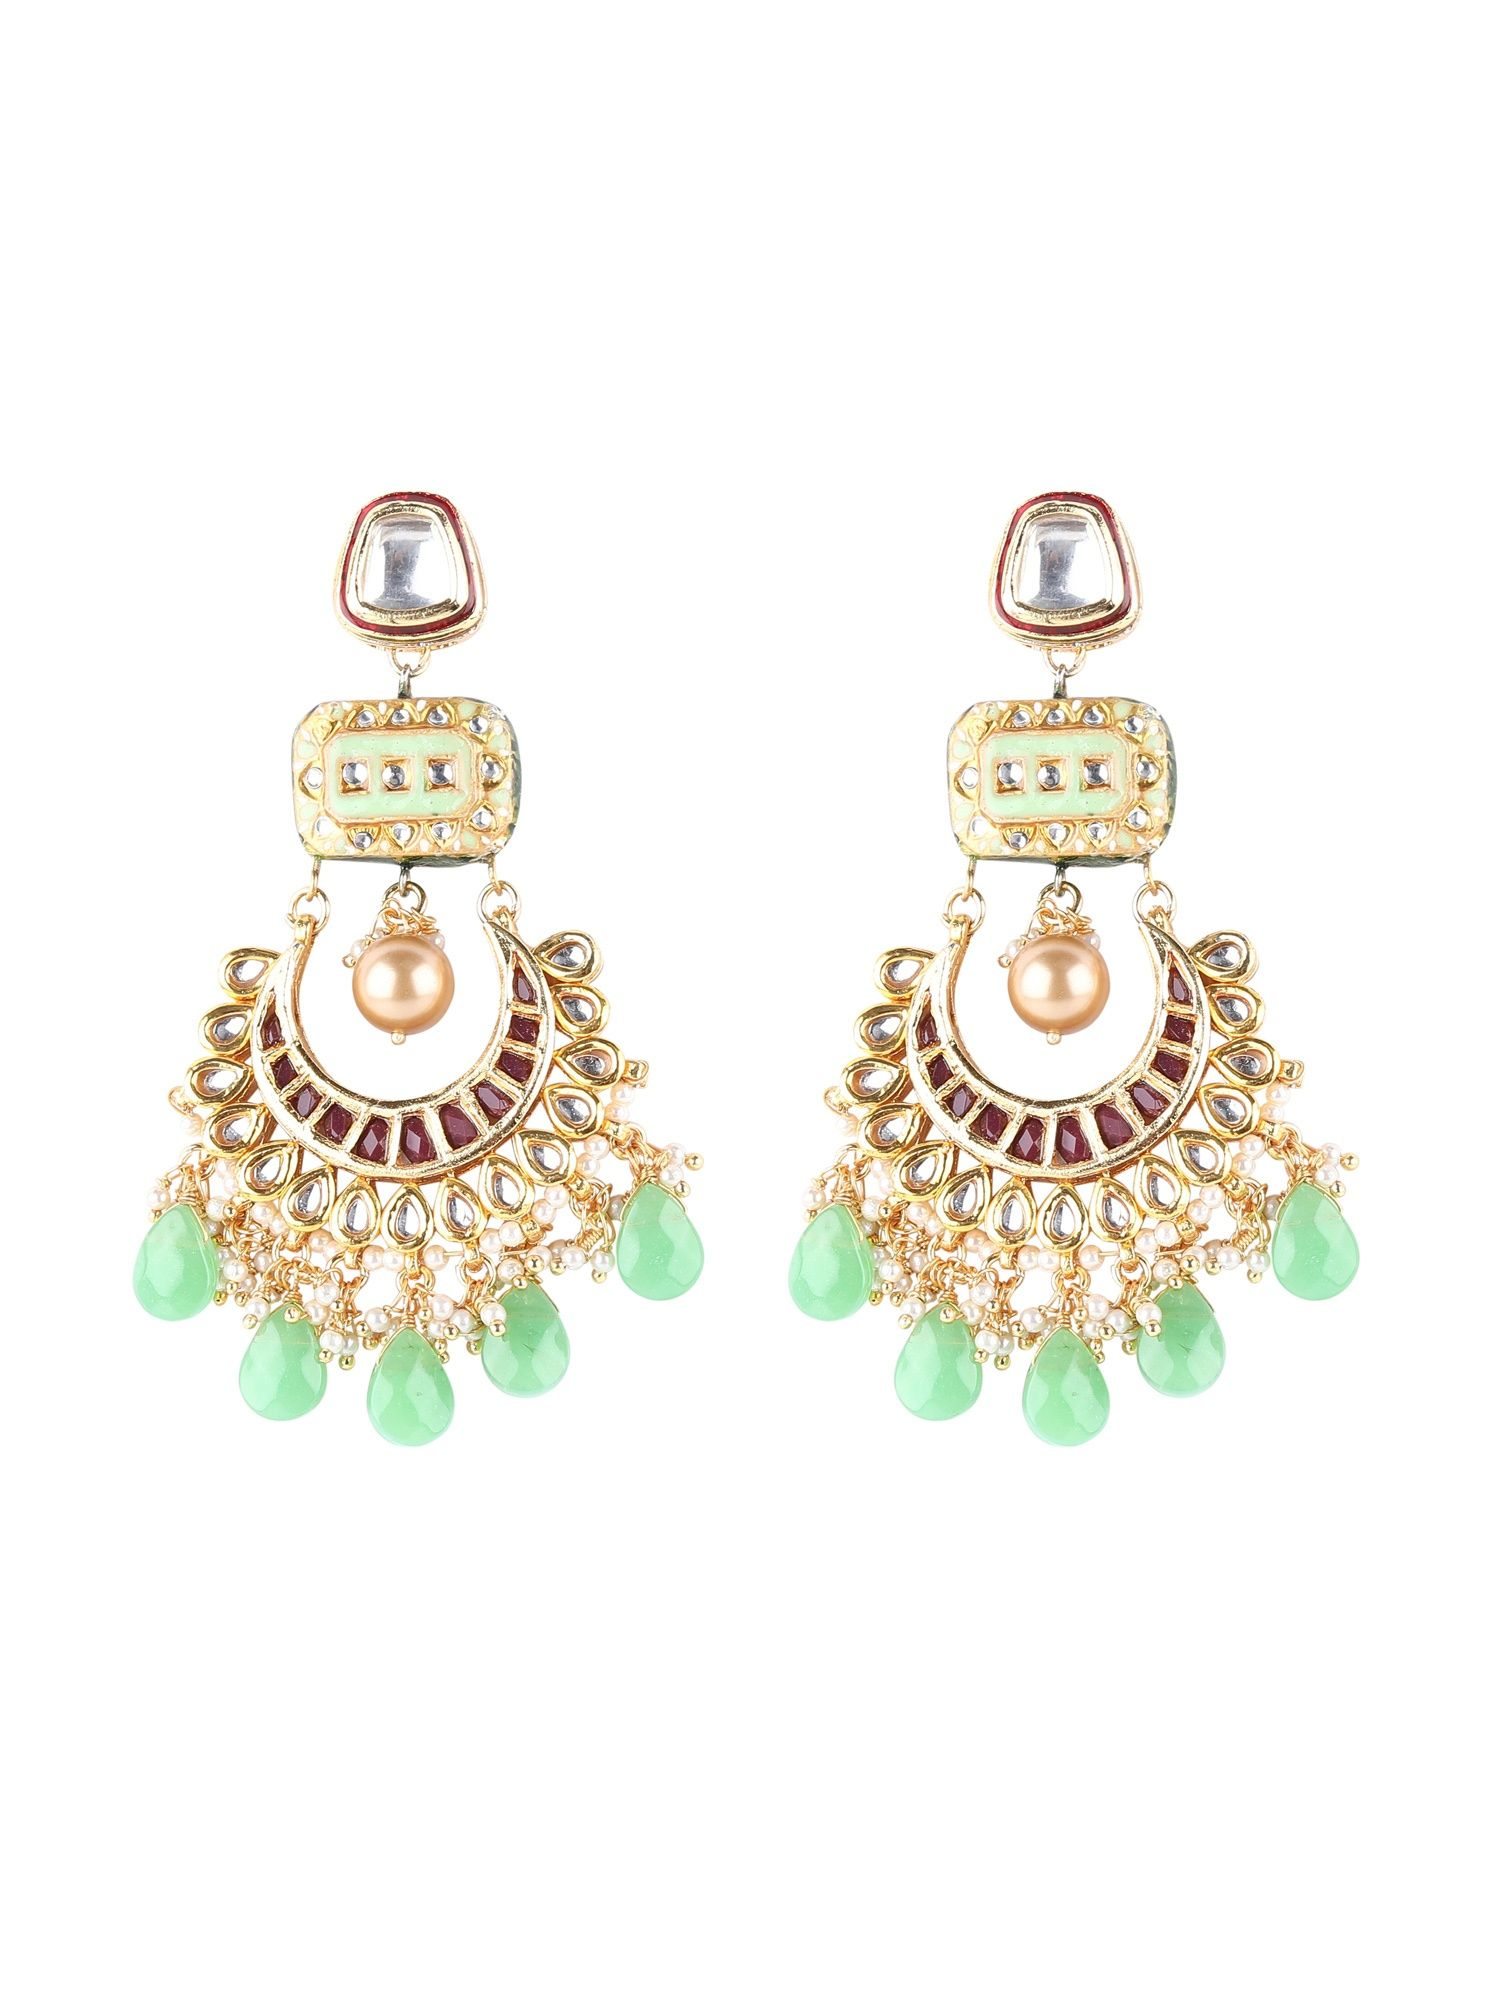 9b4b16155 TAD Accessories Earrings : Buy TAD Accessories Meenakari Chand ...